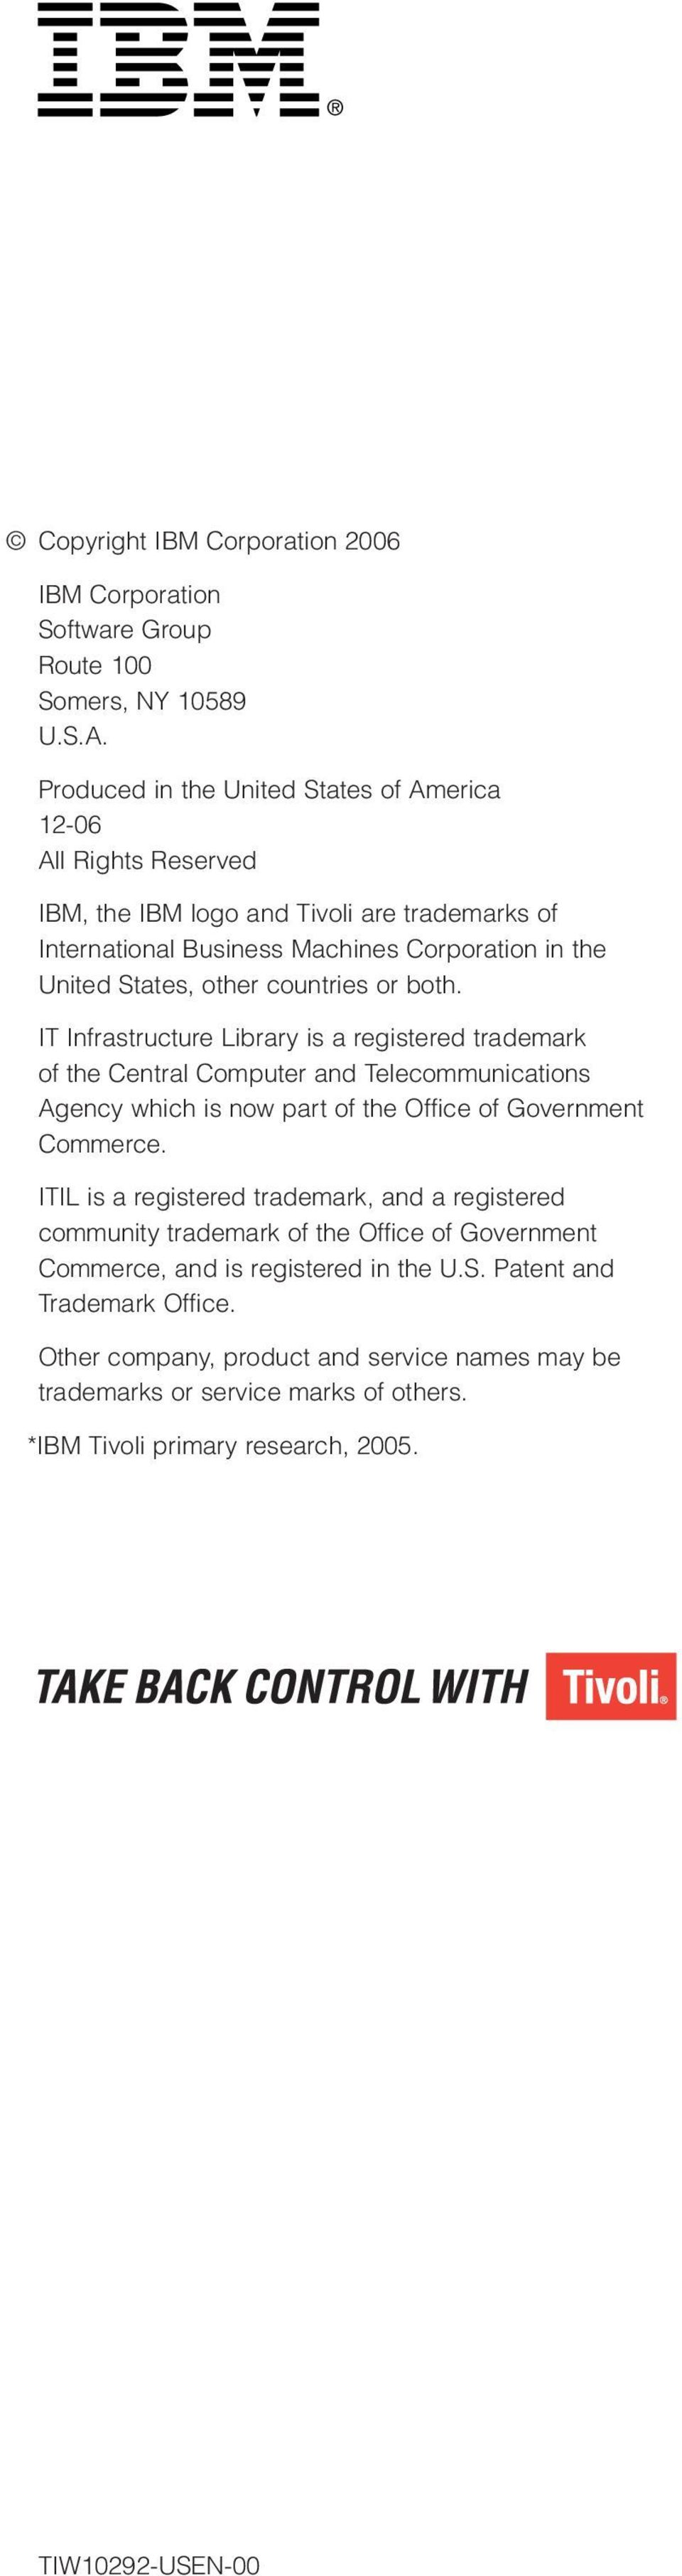 countries or both. IT Infrastructure Library is a registered trademark of the Central Computer and Telecommunications Agency which is now part of the Office of Government Commerce.